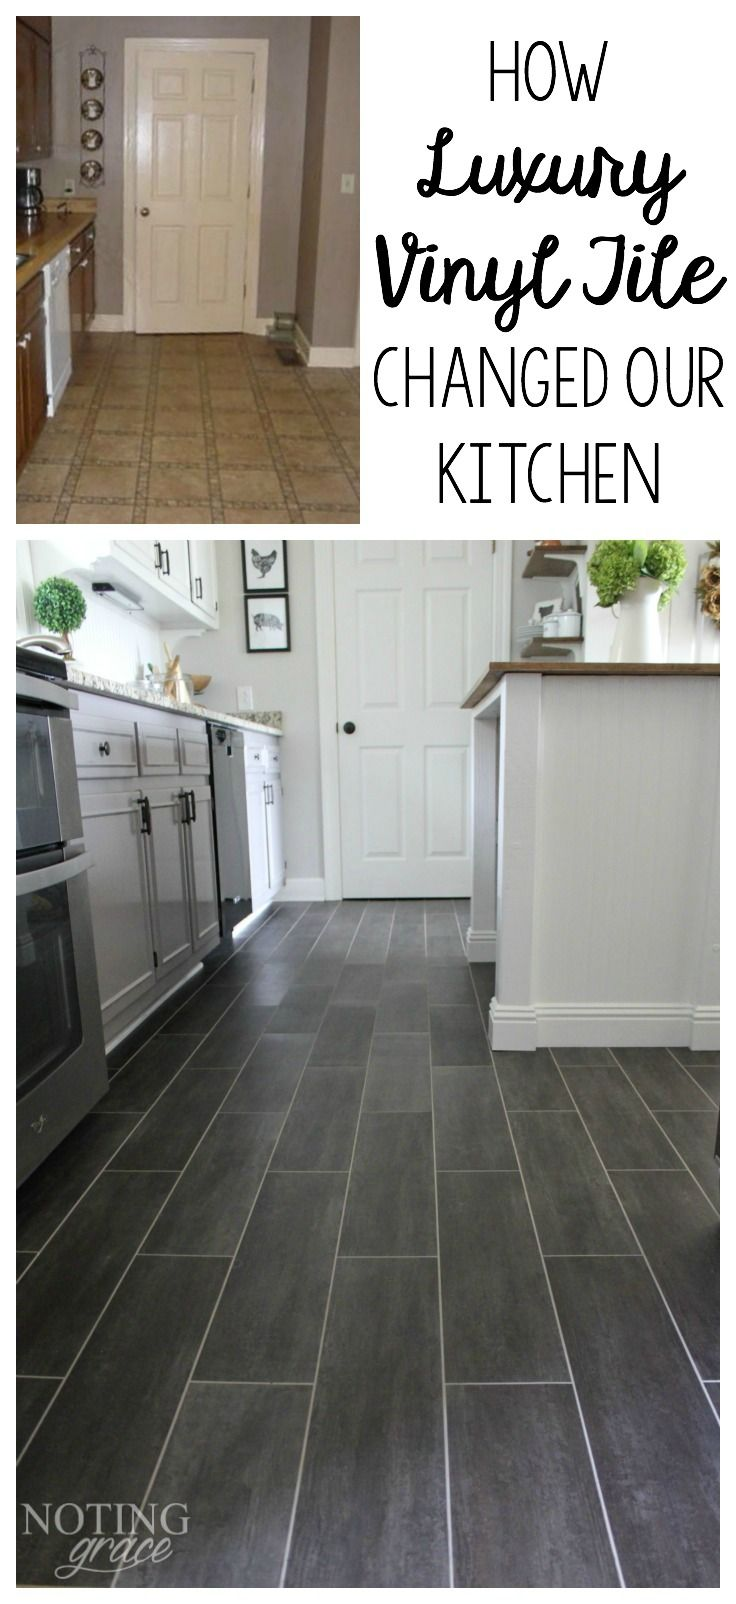 Exceptionnel DIY Kitchen Flooring | Pinterest | Luxury Vinyl Tile, Vinyl Tiles And  Luxury Vinyl